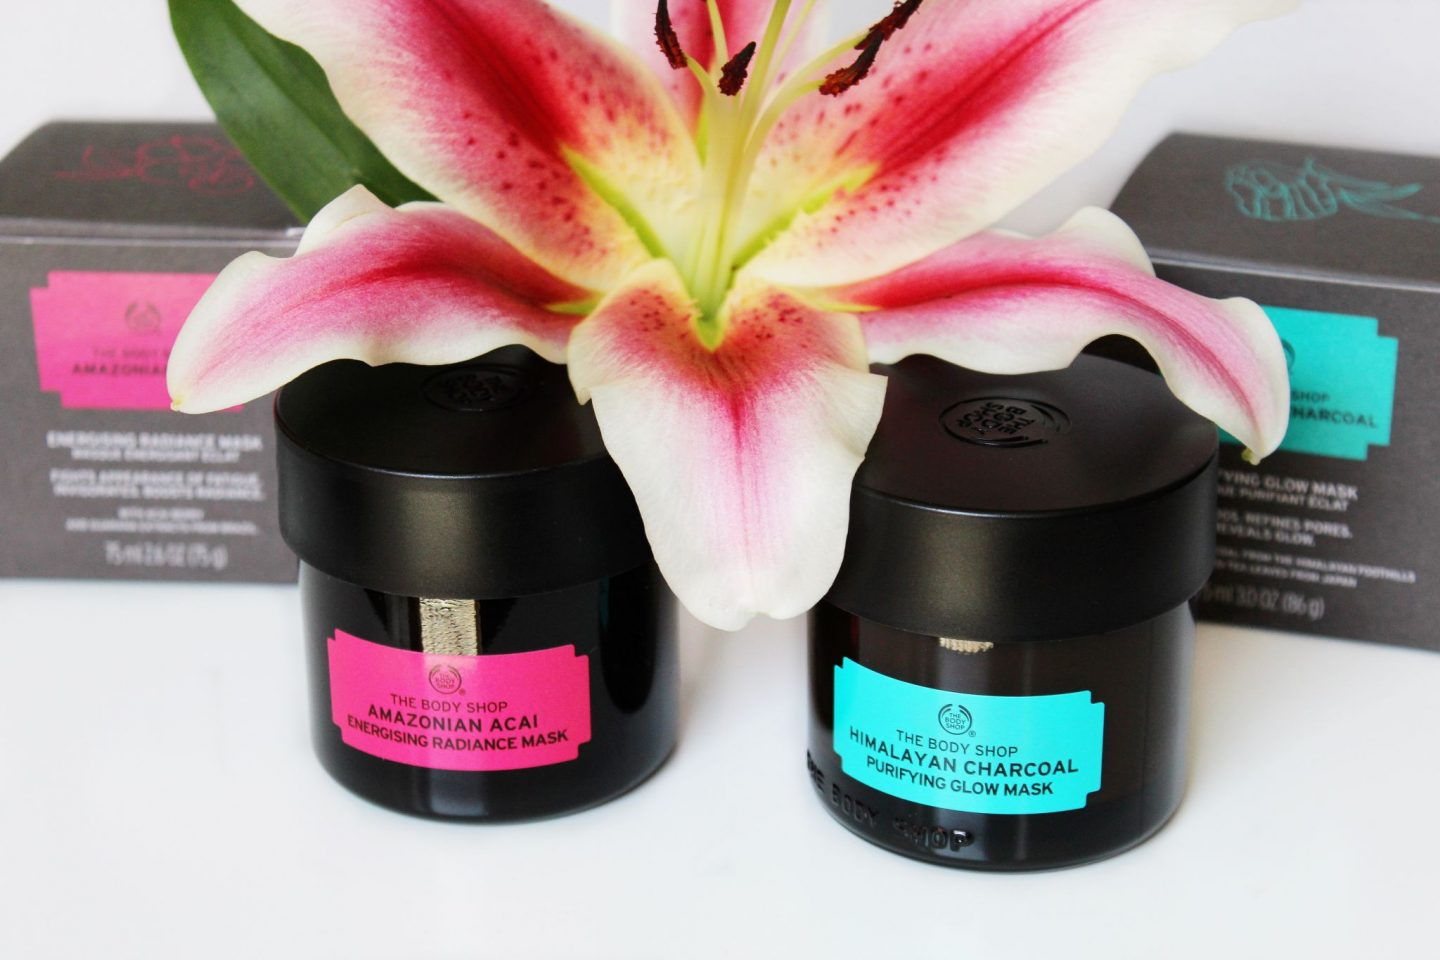 The Body Shop Himalayan Charcoal Purifying Glow Mask and Amazonian Acai Energising Radiance Mask Review - Miel and Mint blog